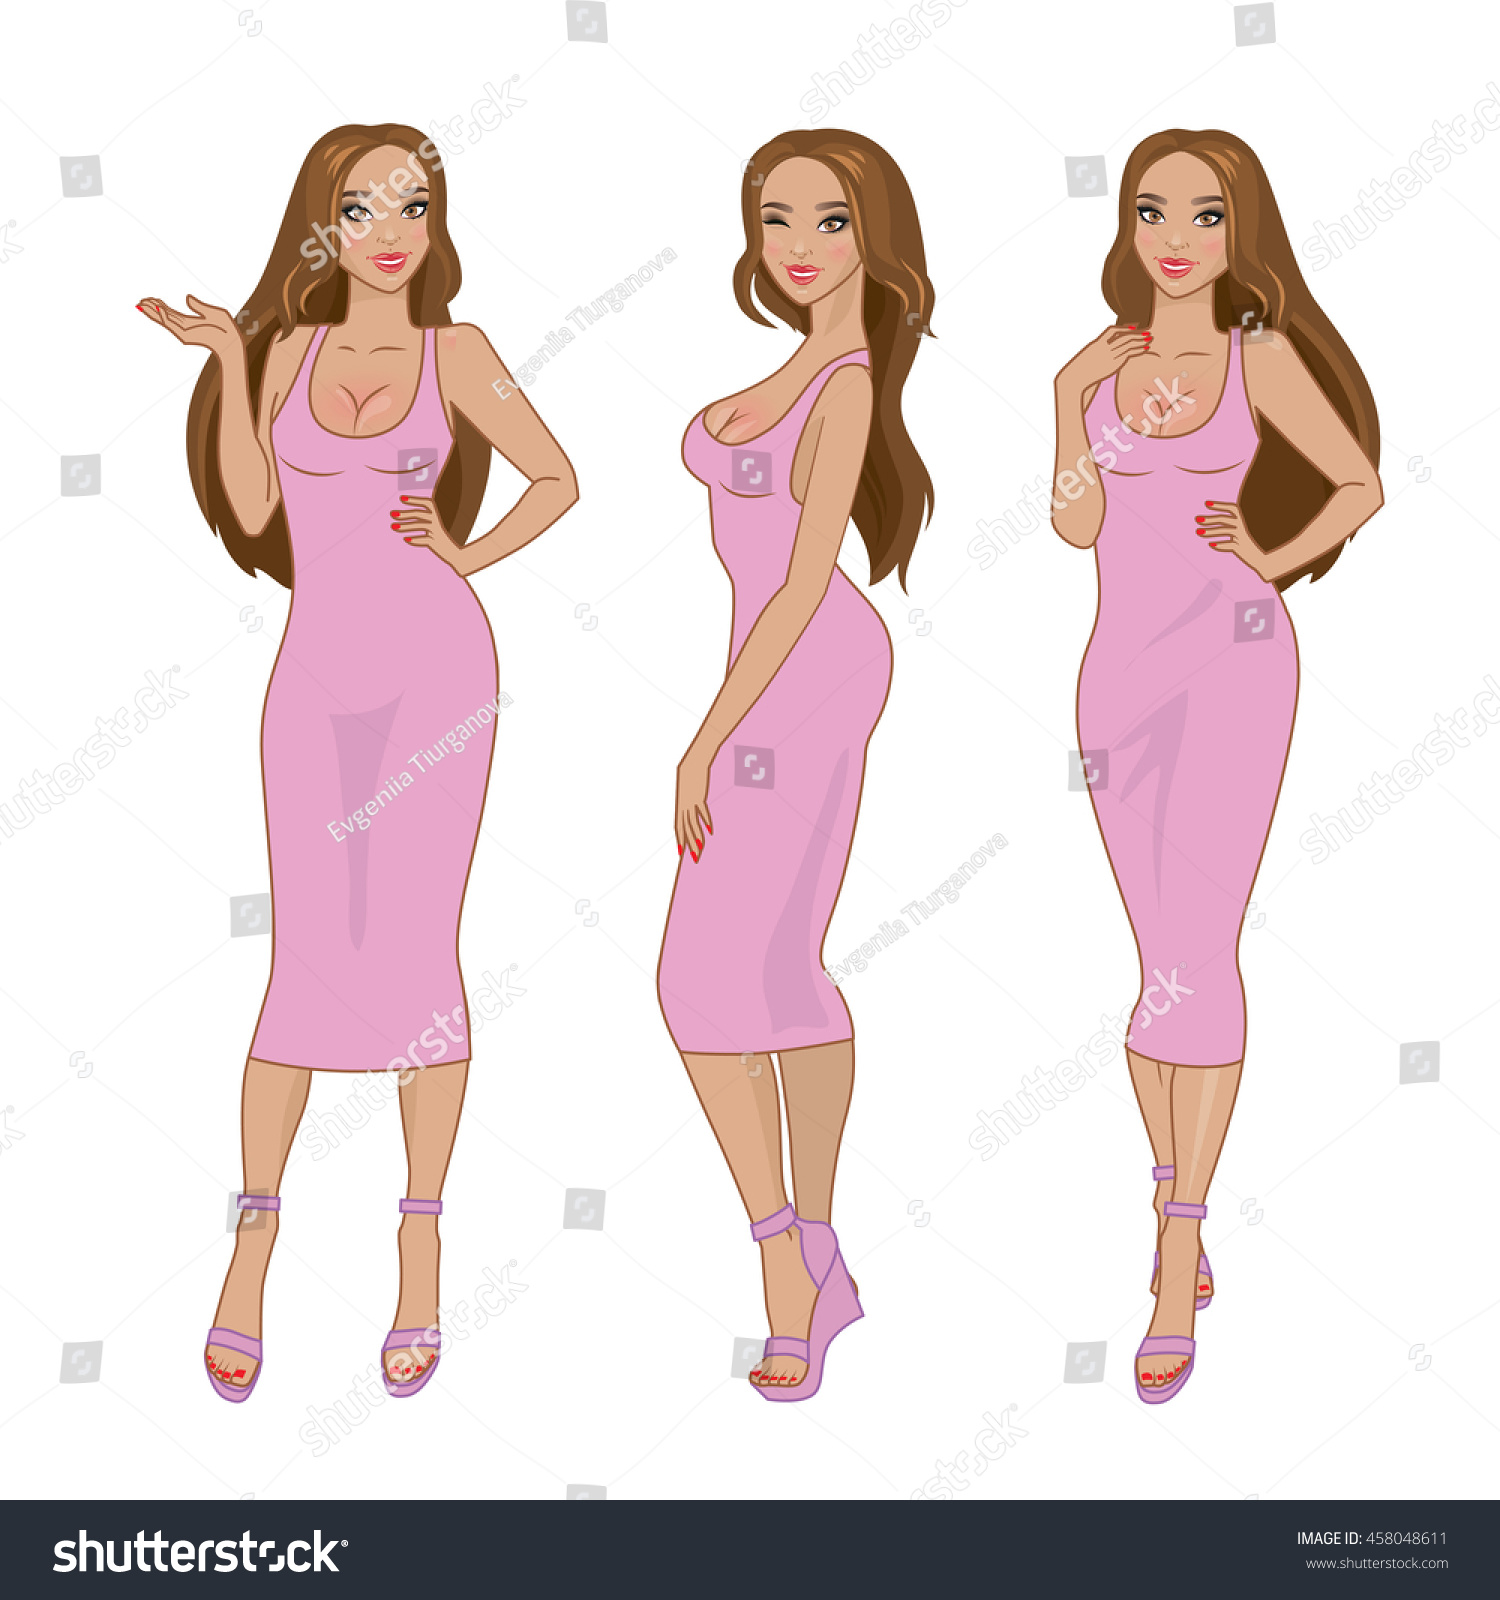 e18b823a5c71 Vector sexy brown-haired girl in pink tight dress. Full body full-length